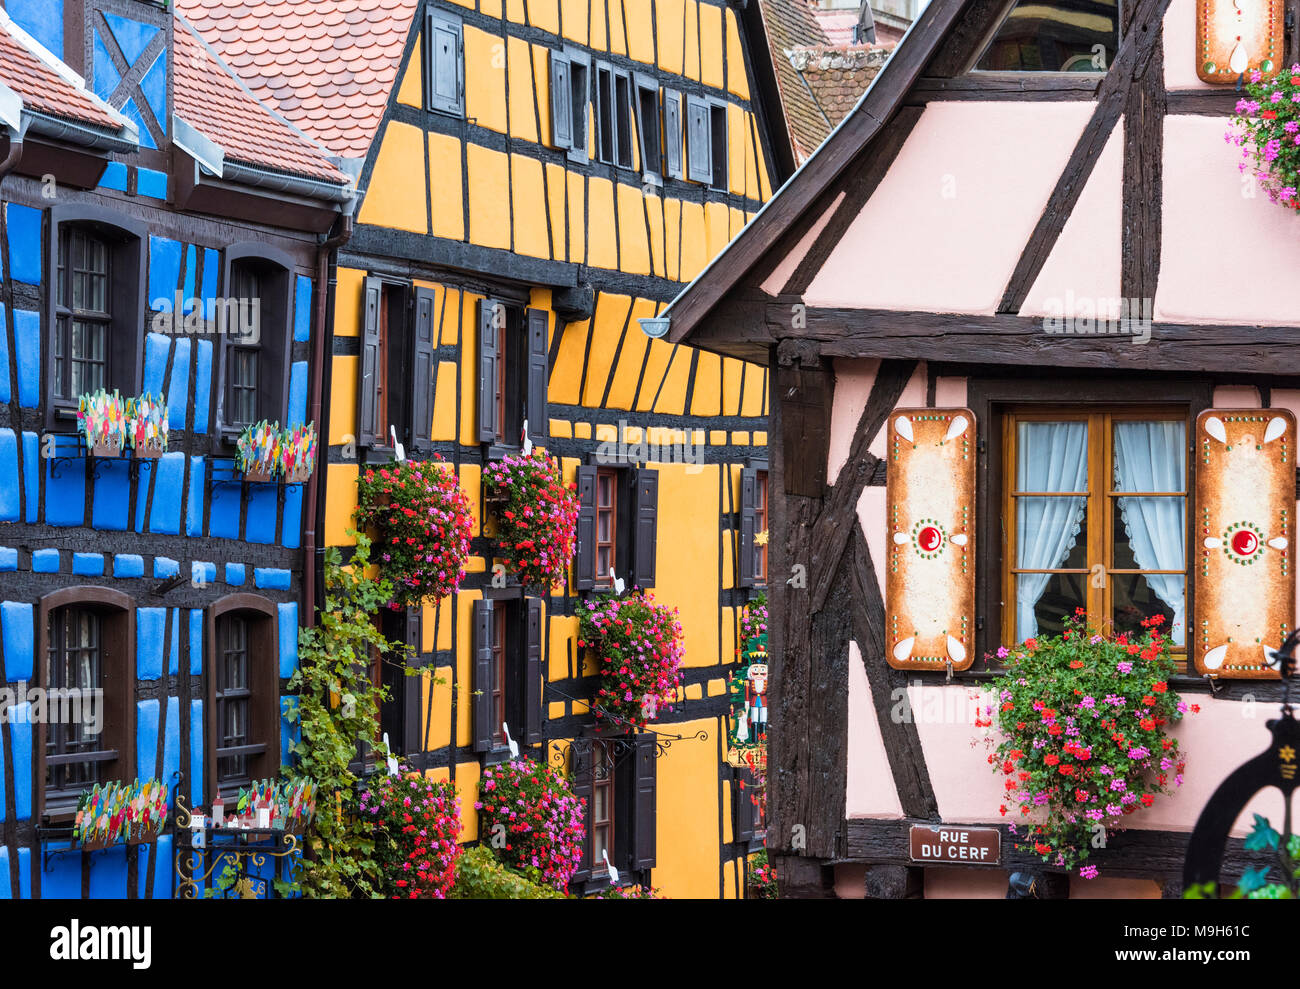 Half-timbered houses of the medieval town of Riquewihr, Alsatian Wine Route, France - Stock Image